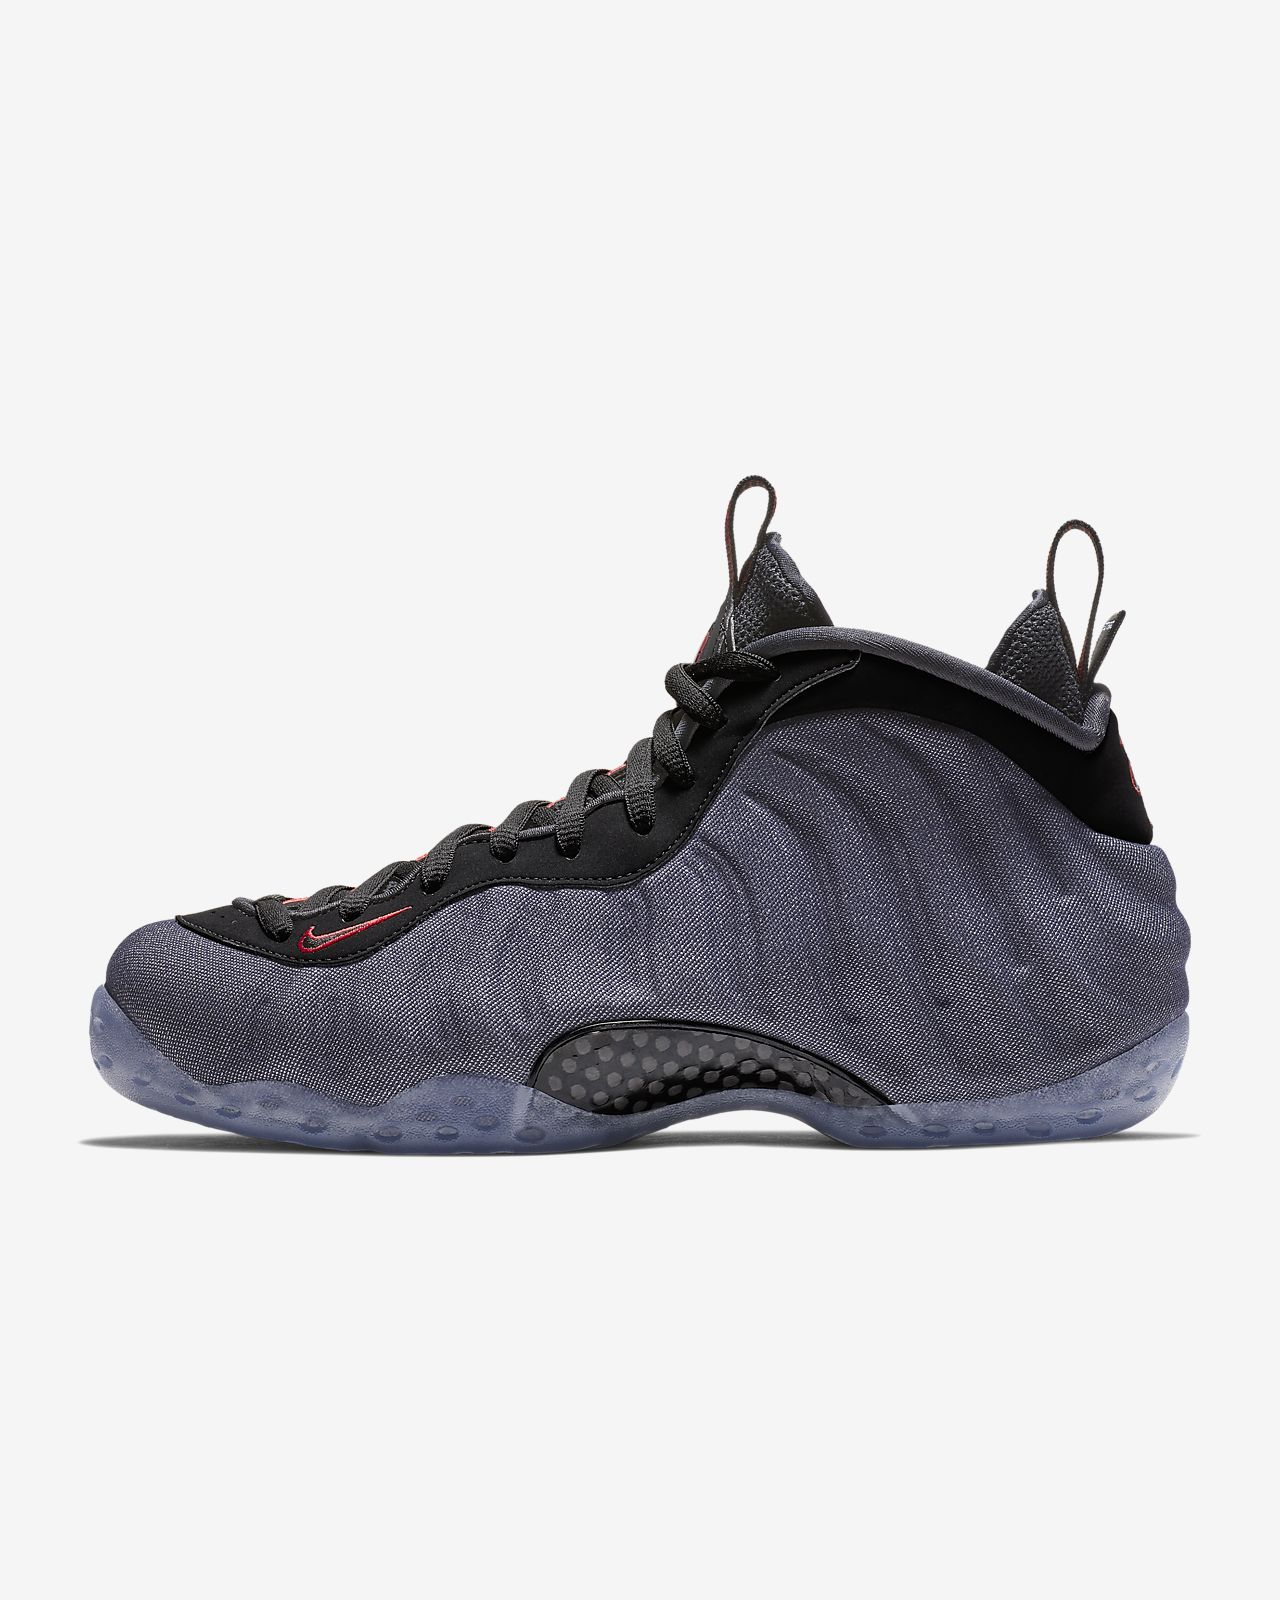 Nike Calzado Para Air One Mx Foamposite Hombre rE4FqzwE